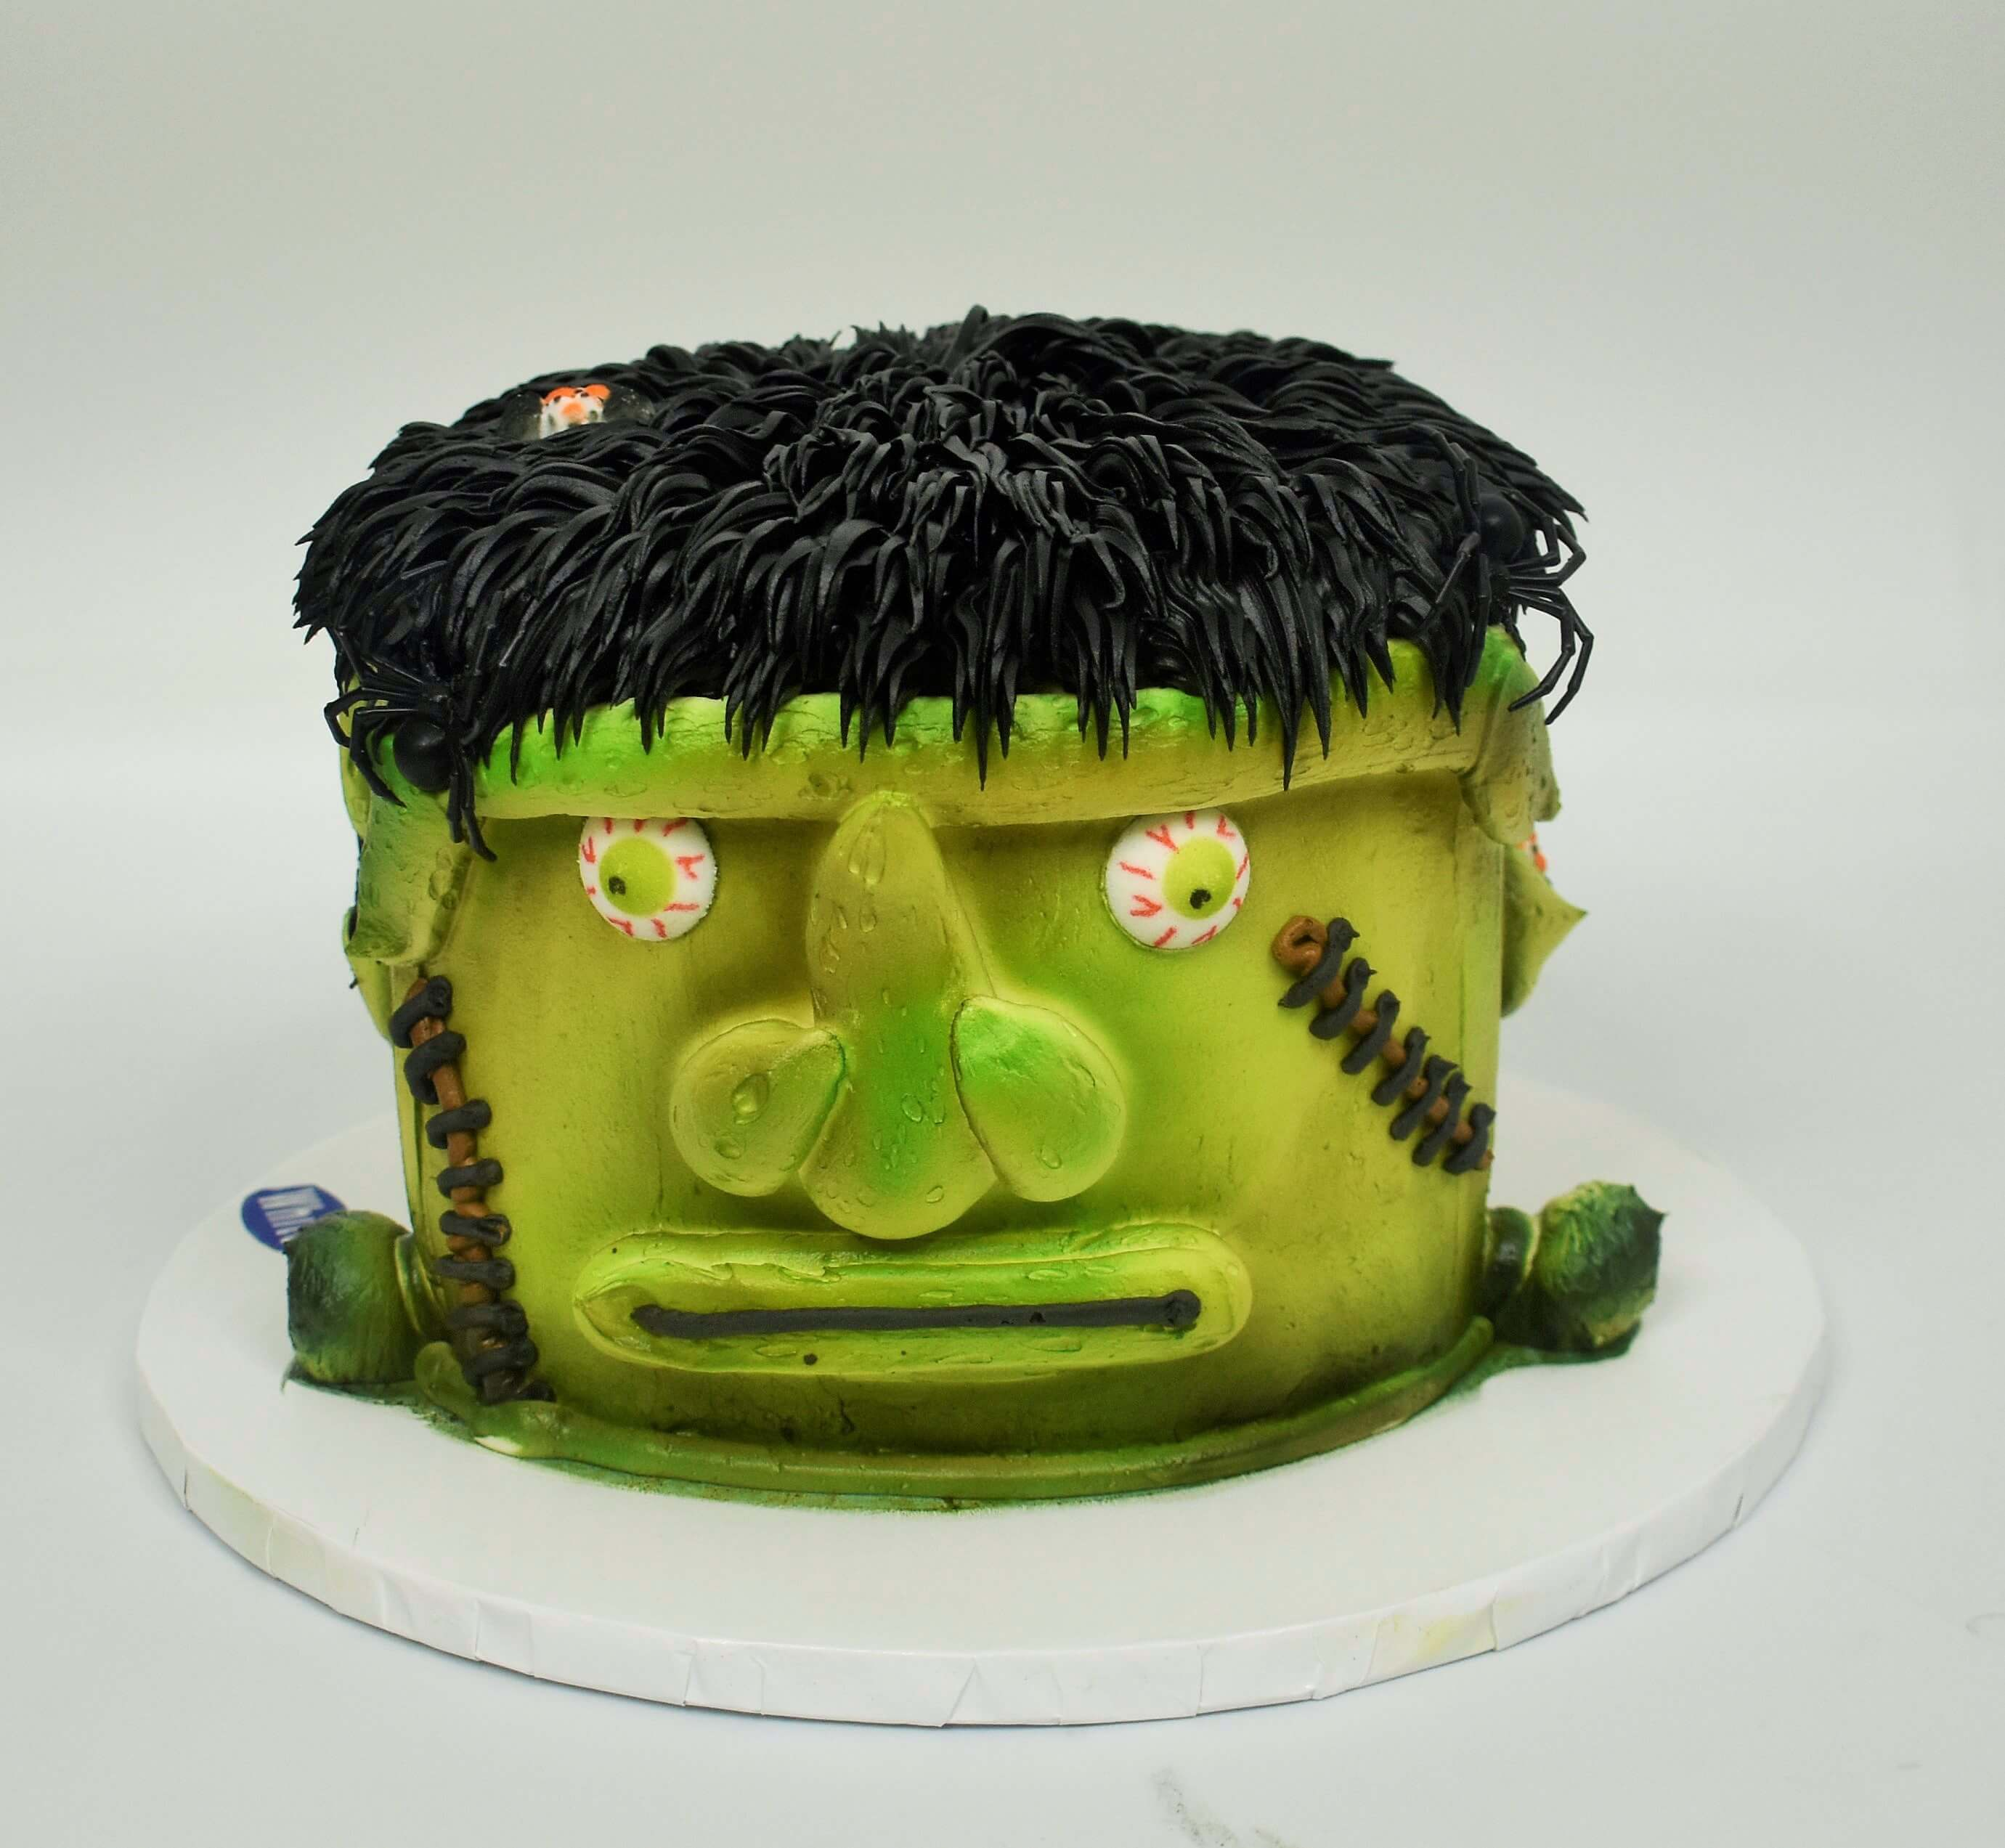 A McArthur's Party Cake of a scary Frankenstein head for Halloween